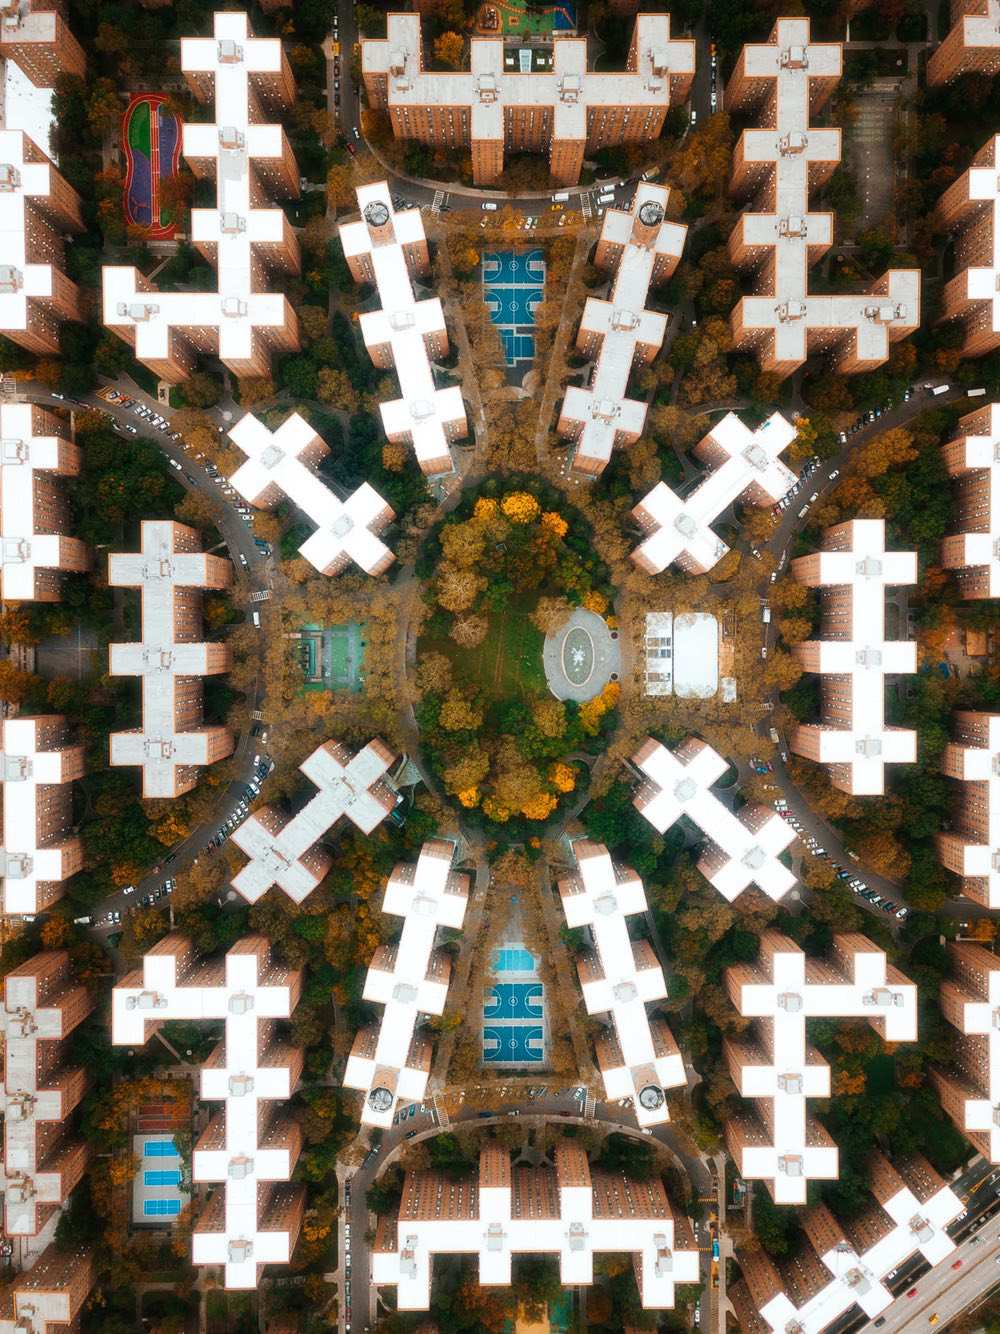 Stuyvesant Town - Amazing drone photos of New York City looking straight down 0007